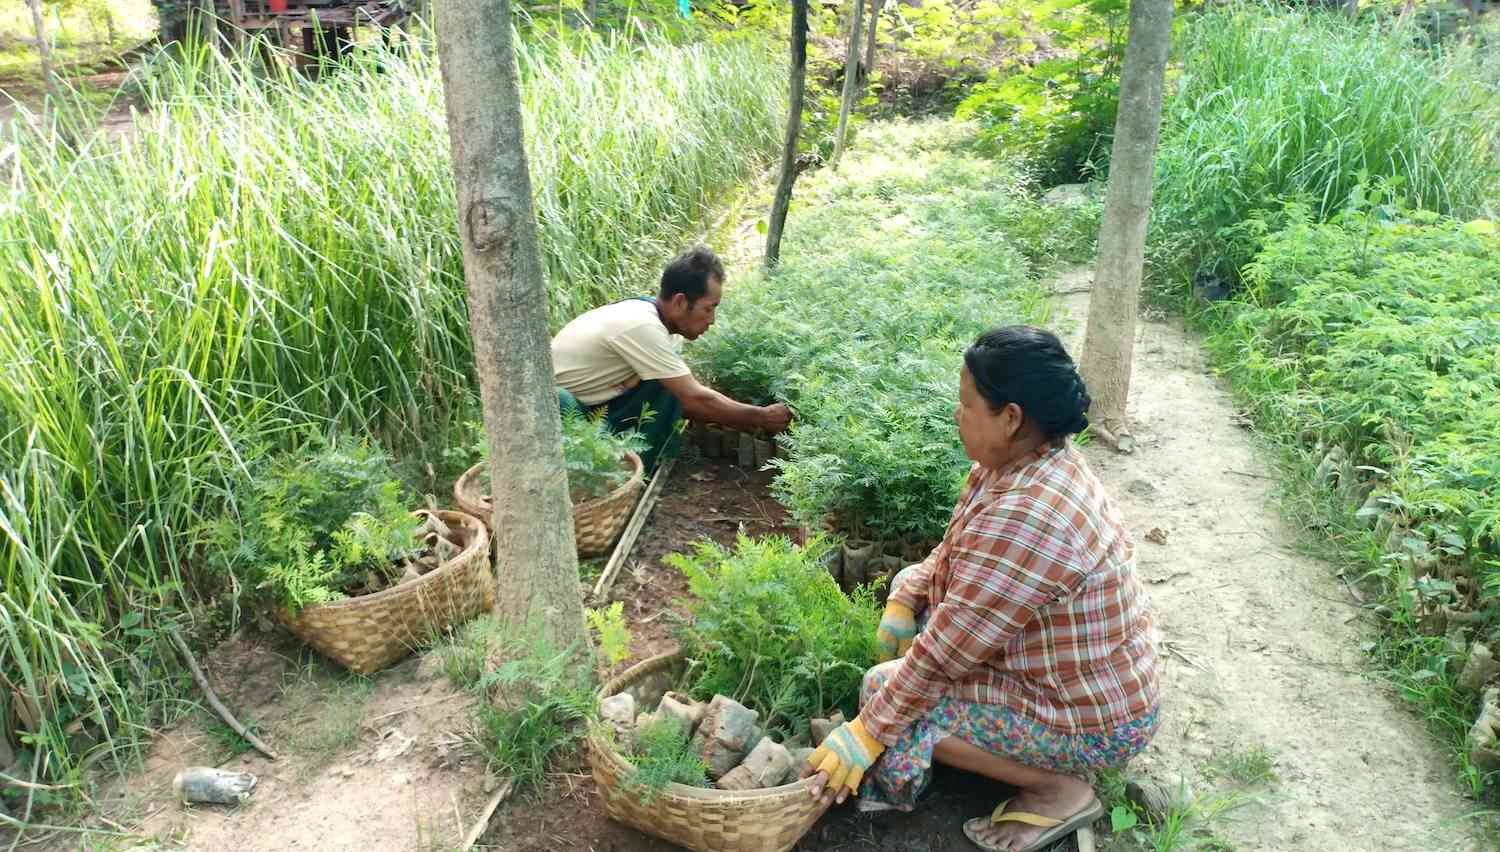 A man and a woman handle tree seedlings in a nursery.